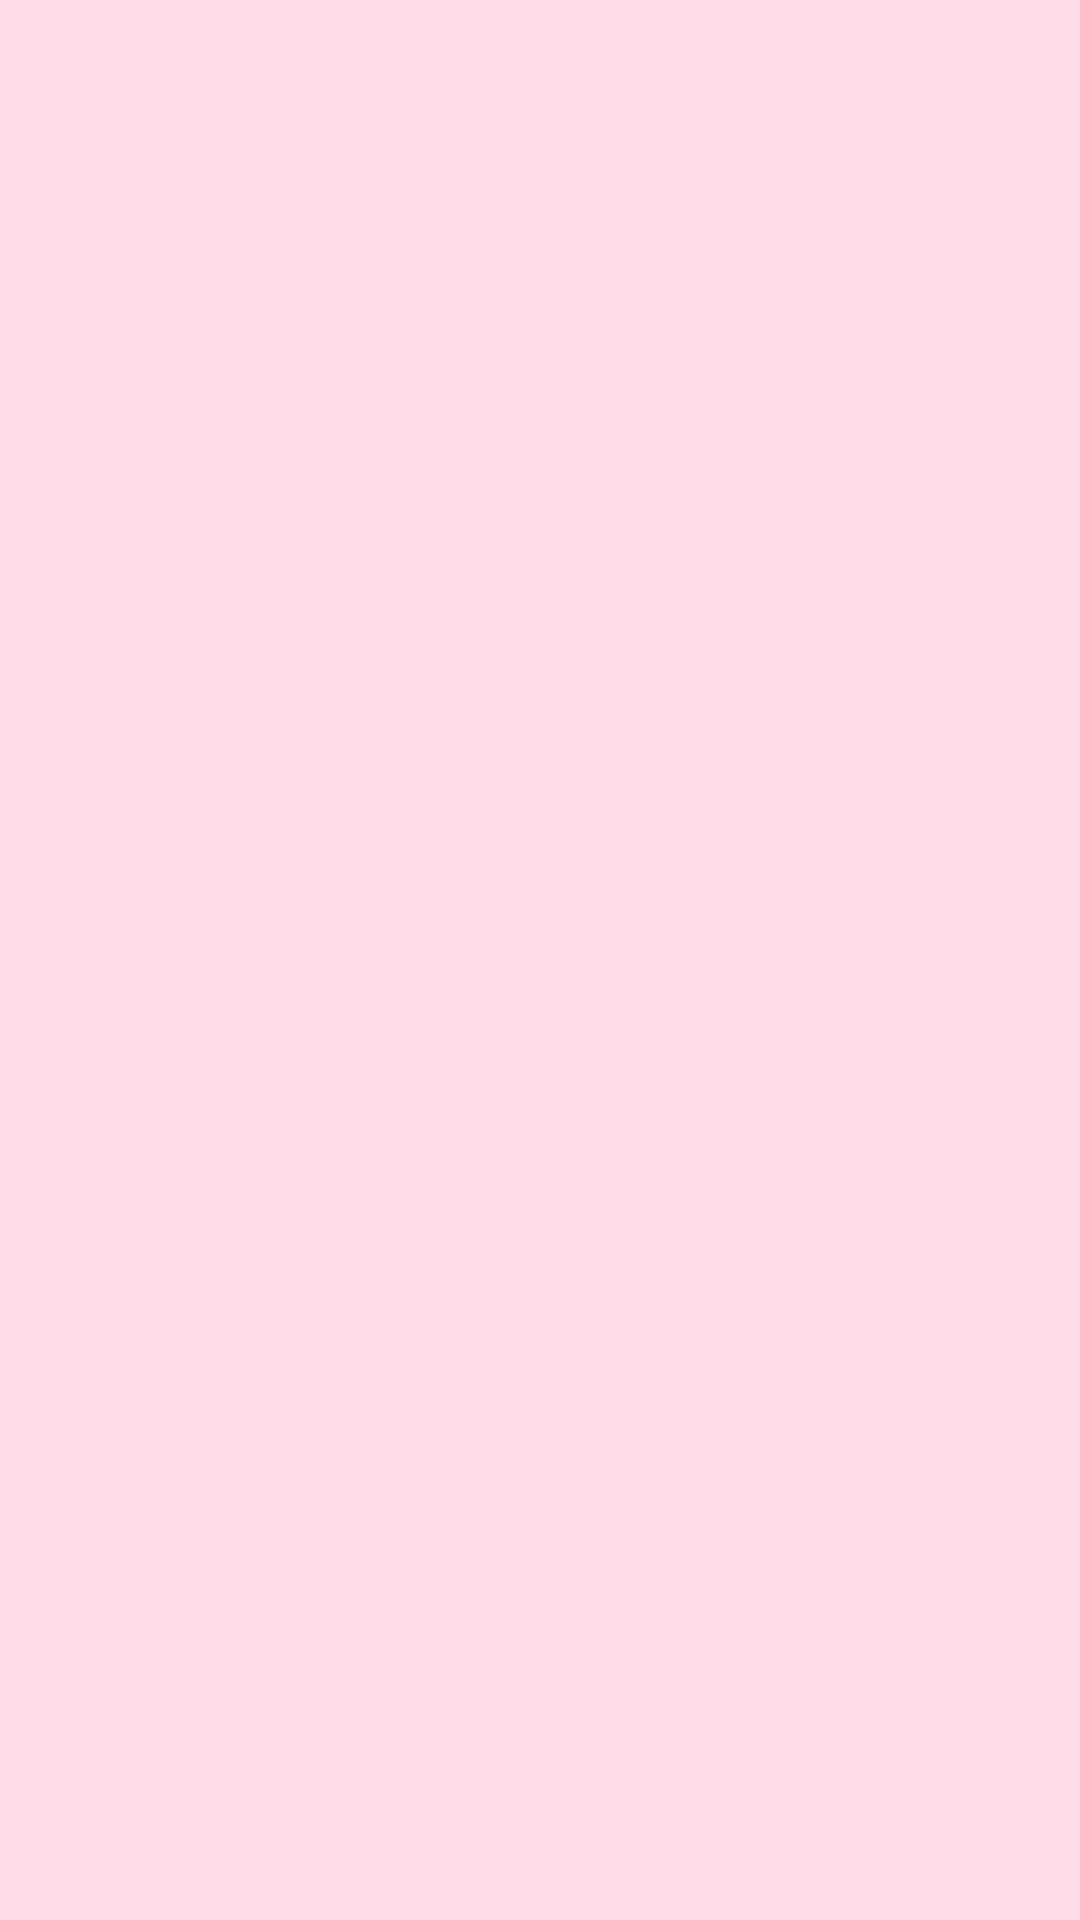 Plain light pink wallpaper